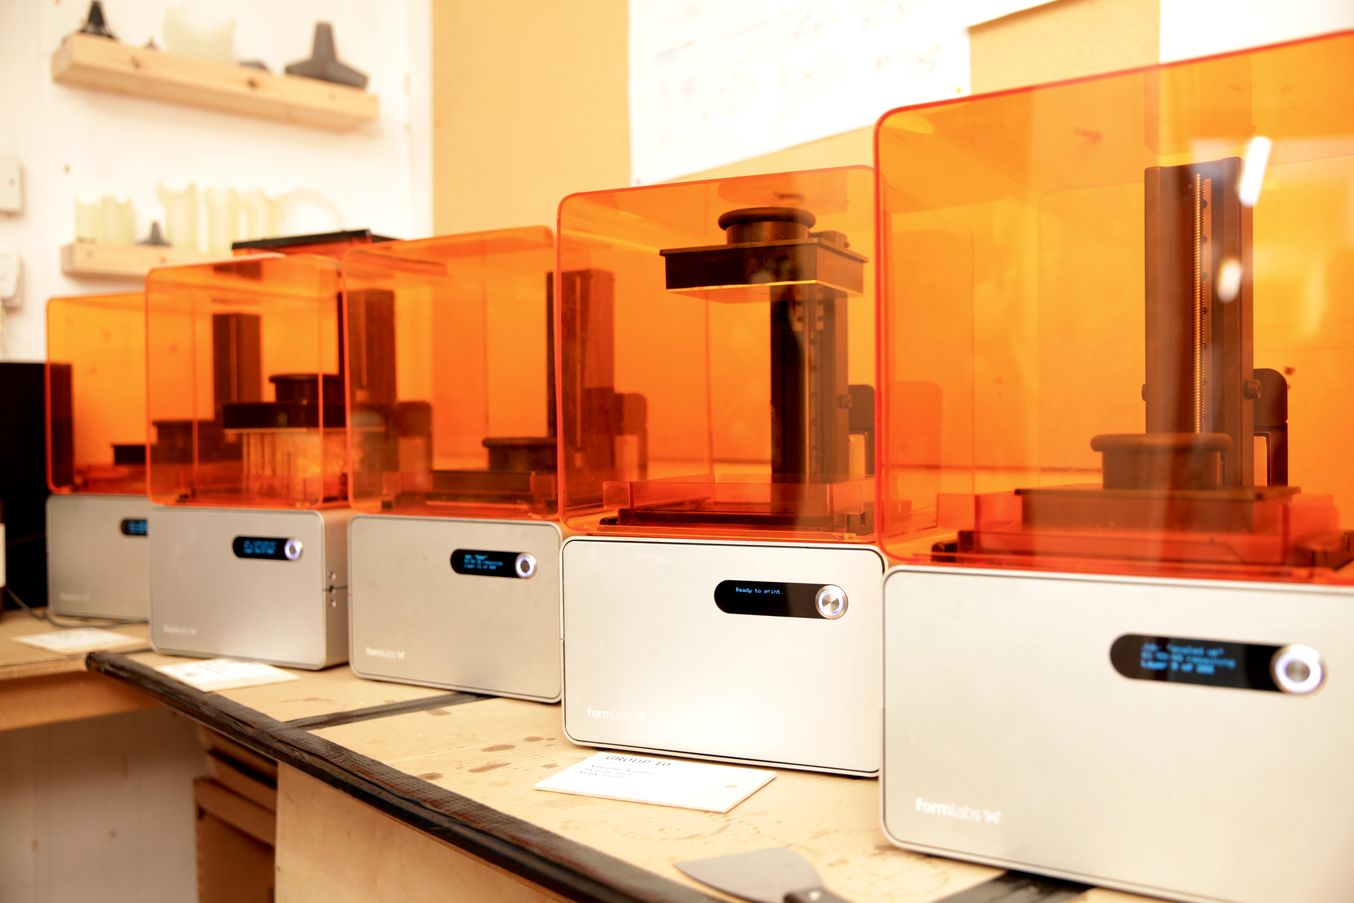 RCA Students Prototyped On Form 1 3D Printers In A QuotBenchtop Factoryquot